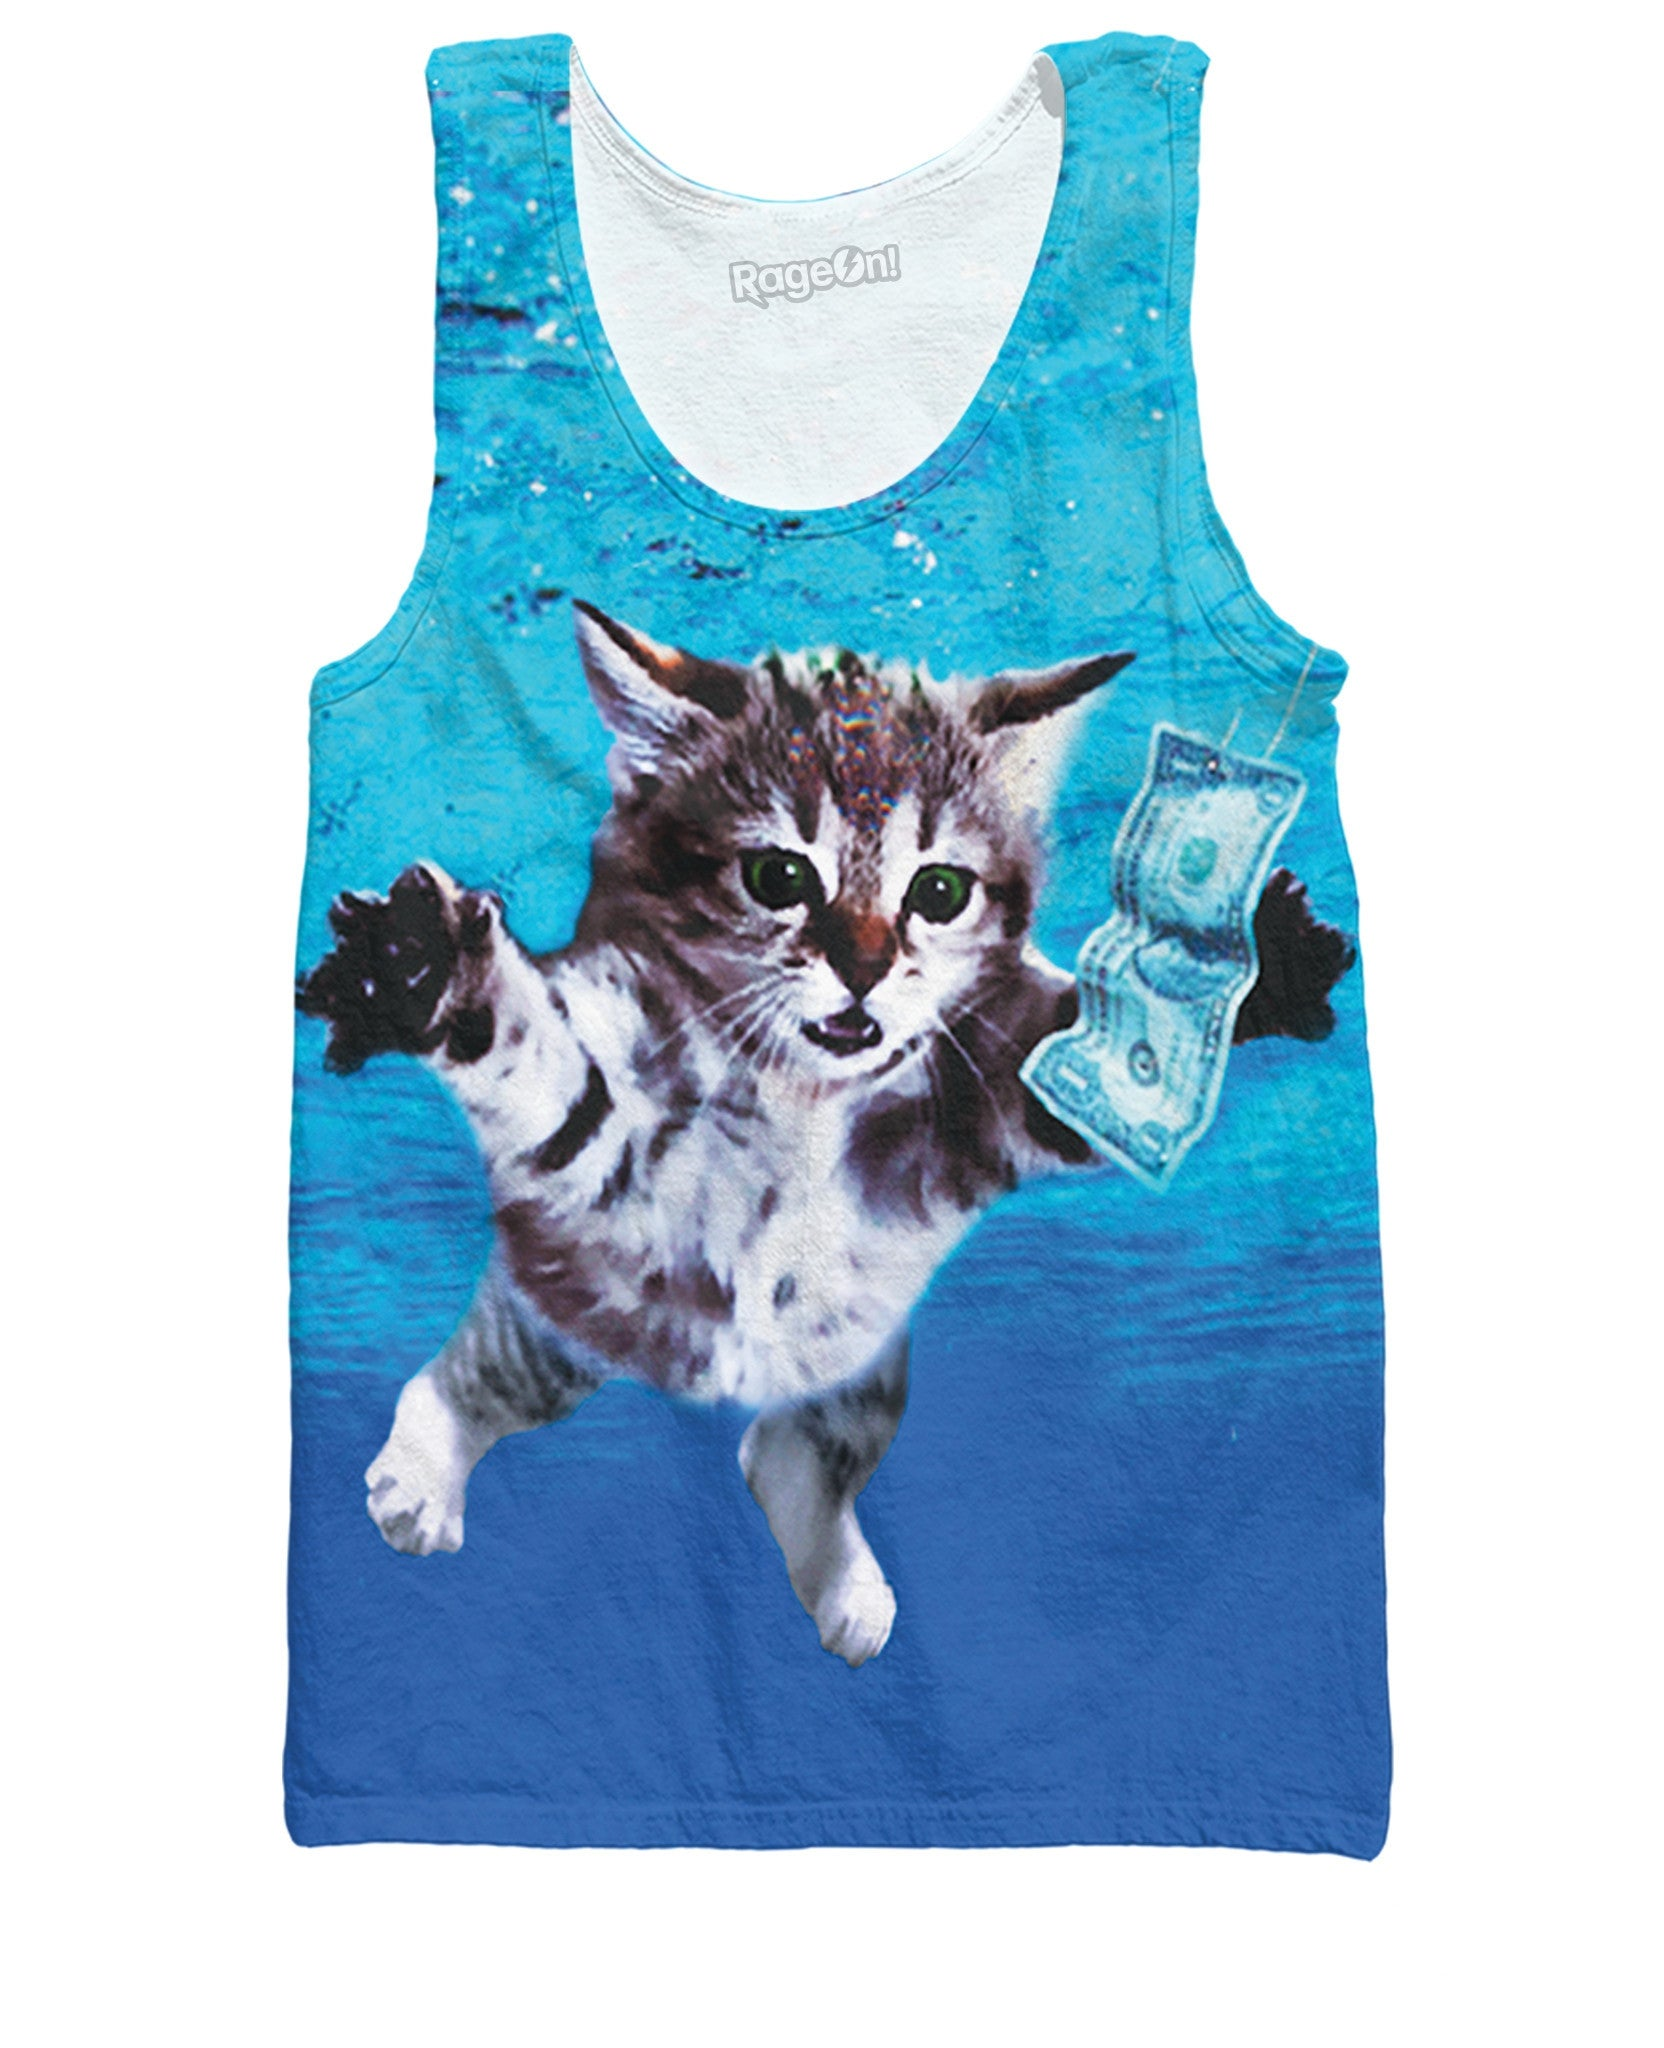 Cat Cobain All-Over Print Tank Top - Love Kitty Cat